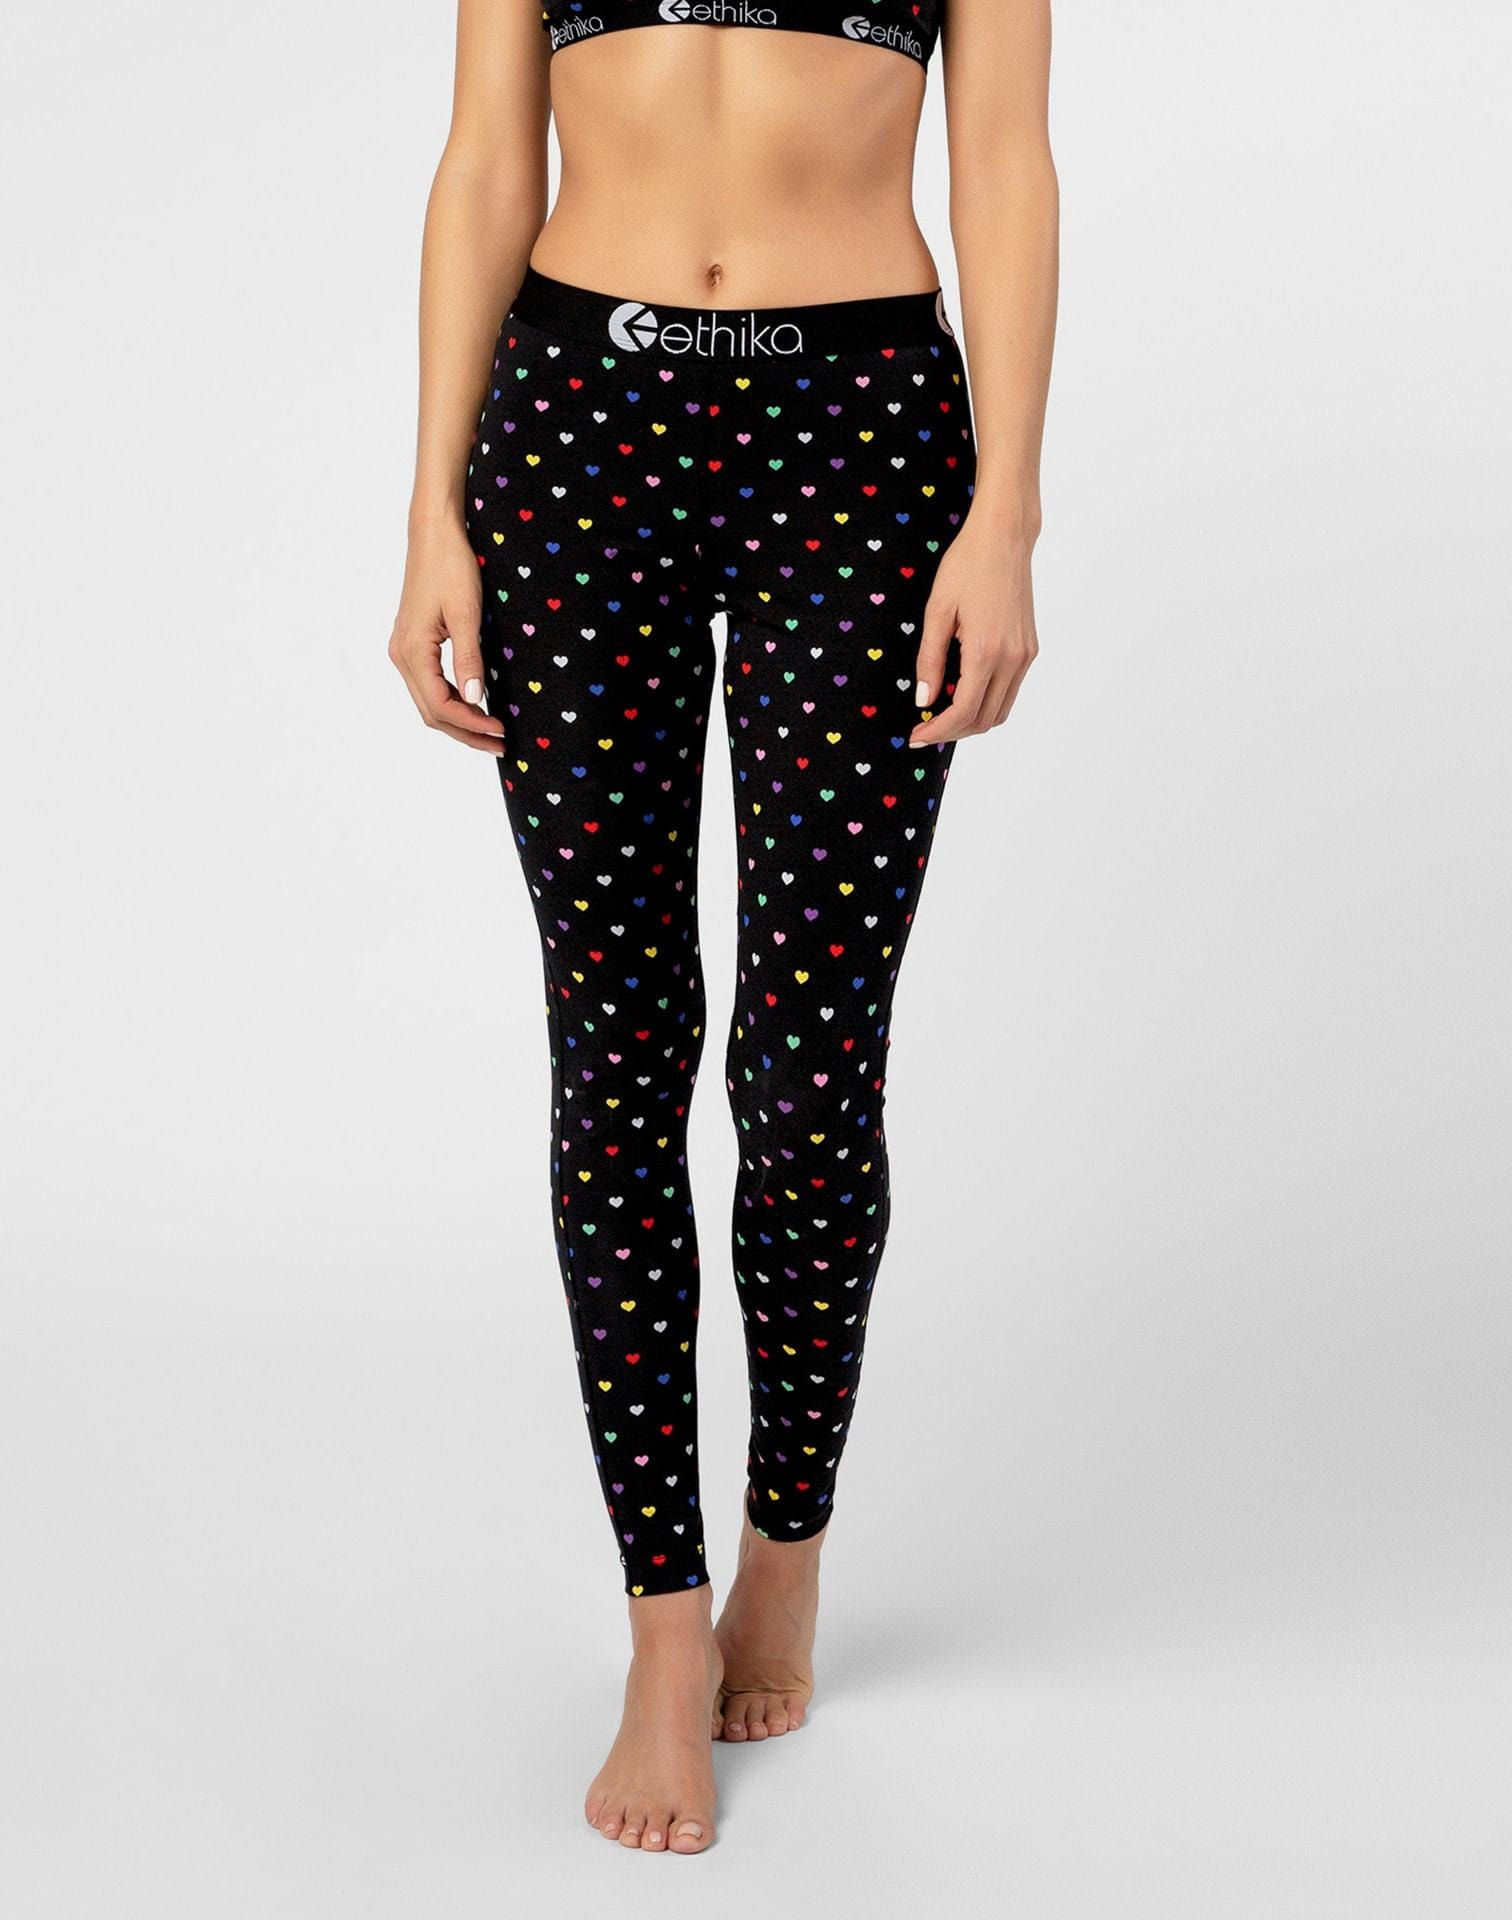 Ethika Women's XOXO Hearts Leggings